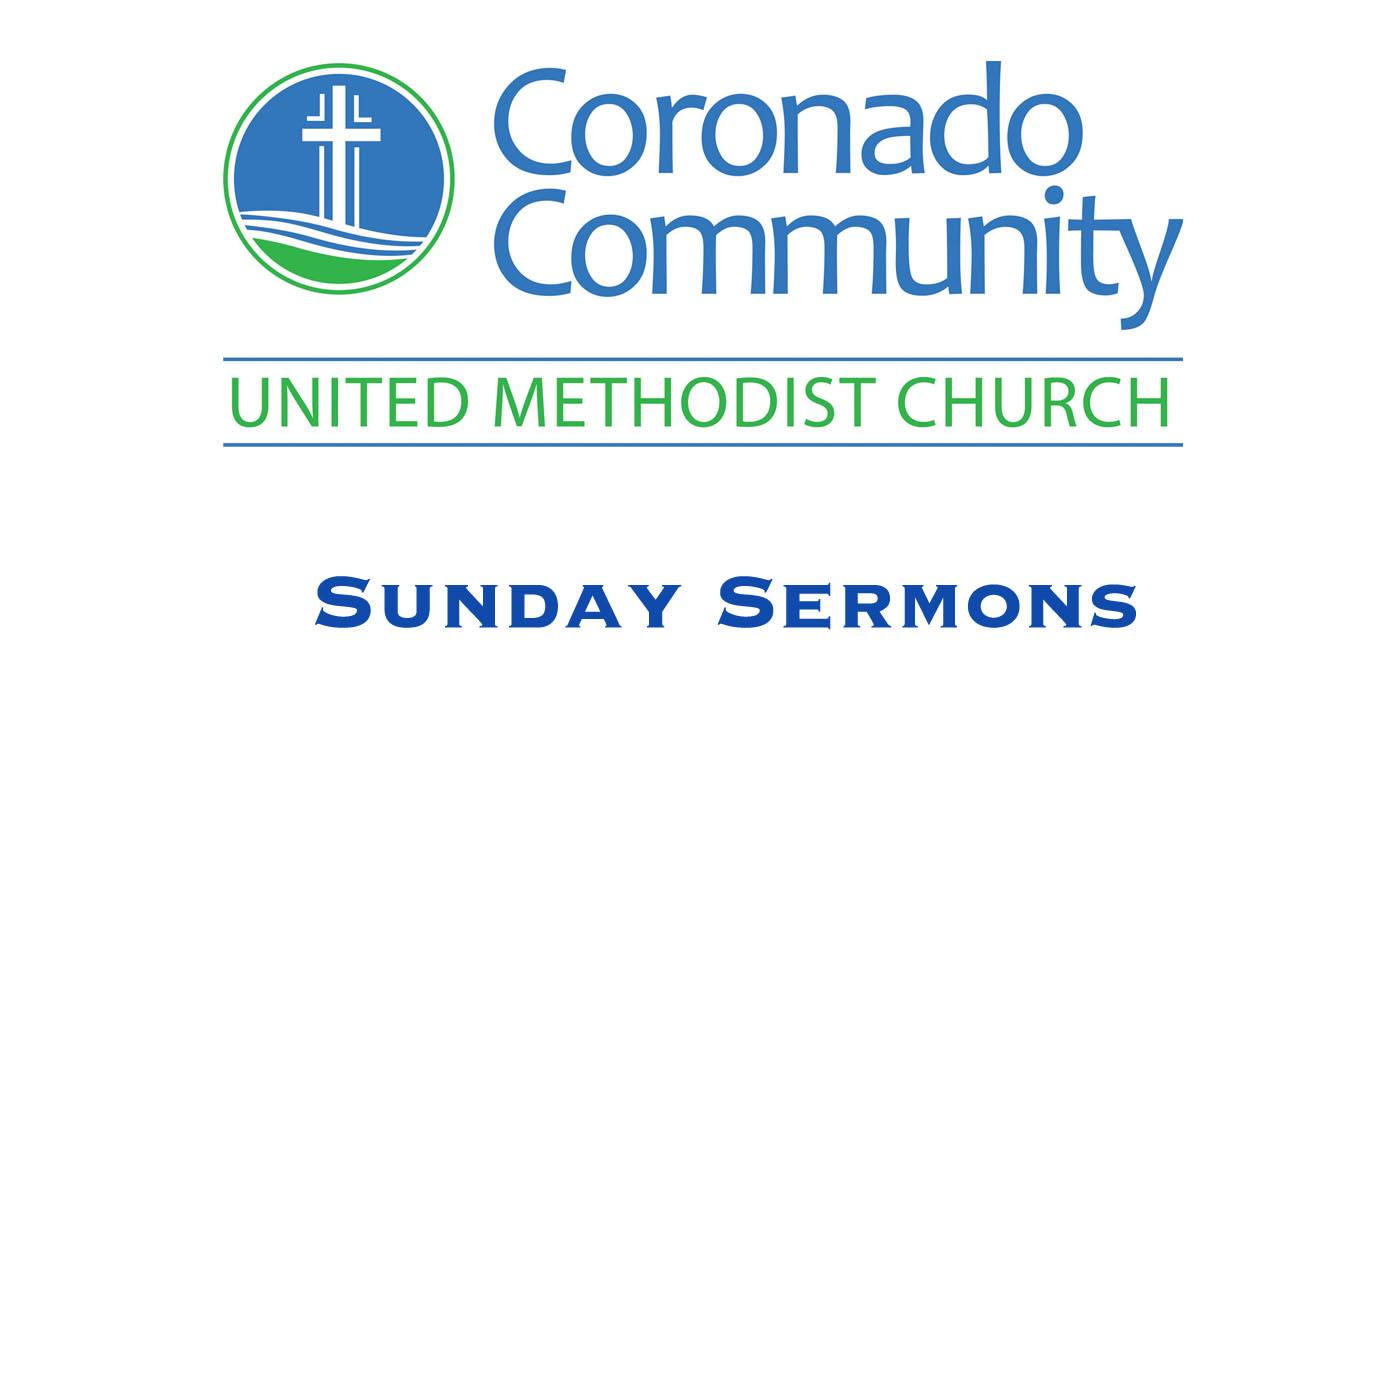 Sermons – Coronado Community United Methodist Church